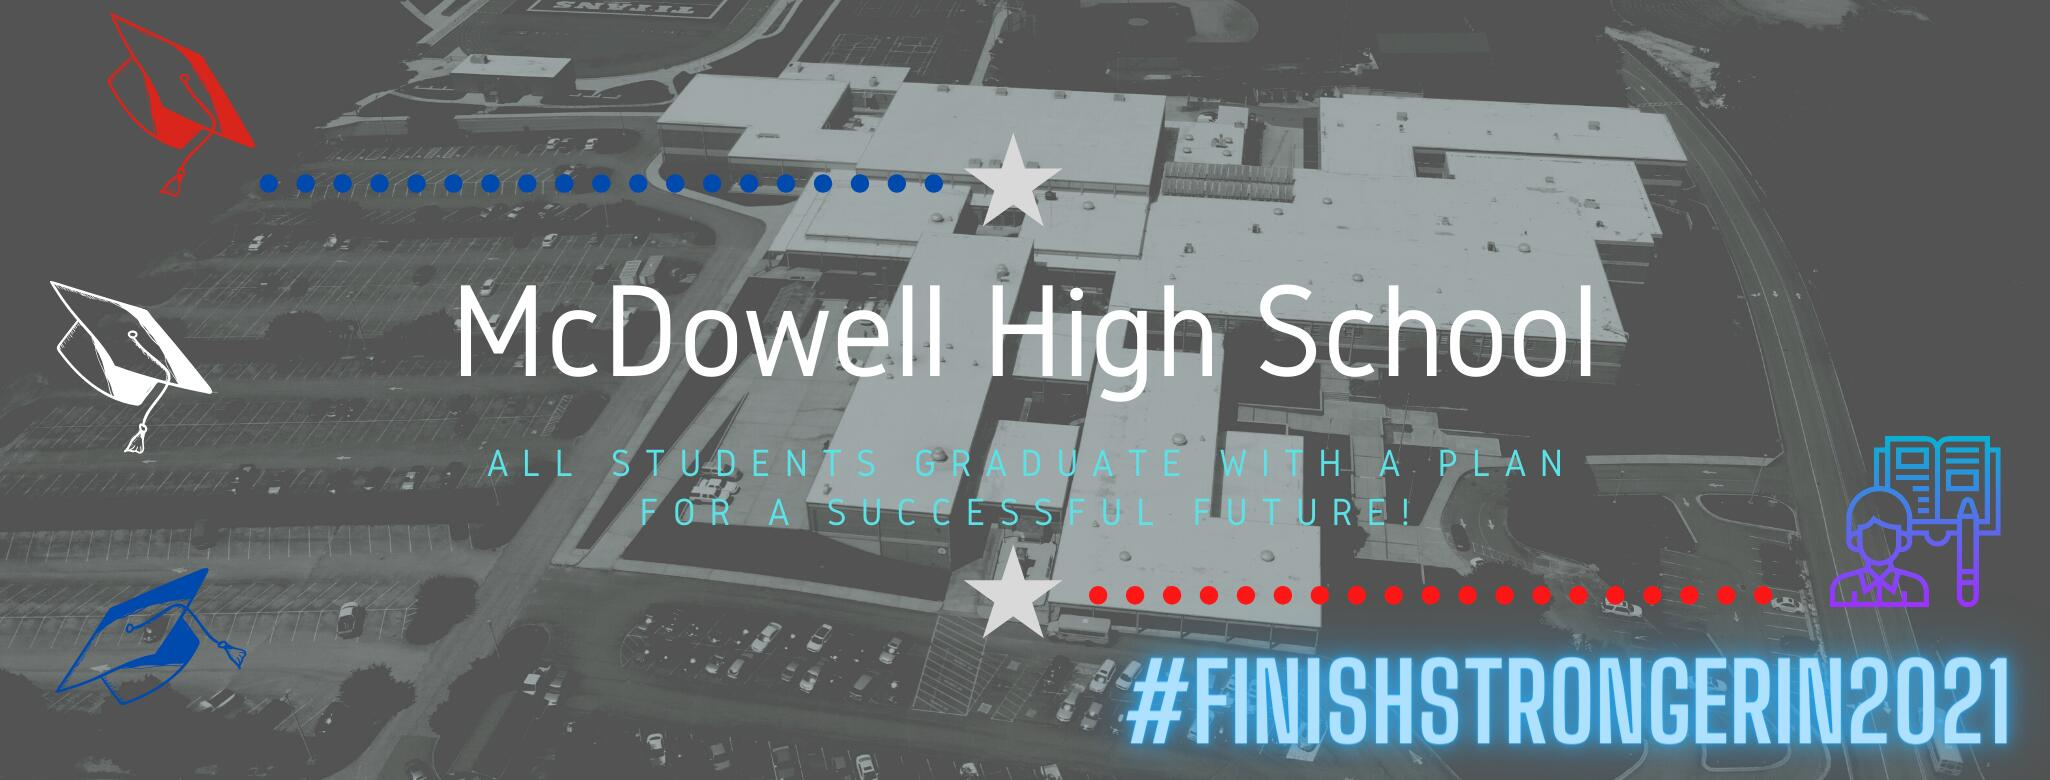 McDowell High School Stronger Together